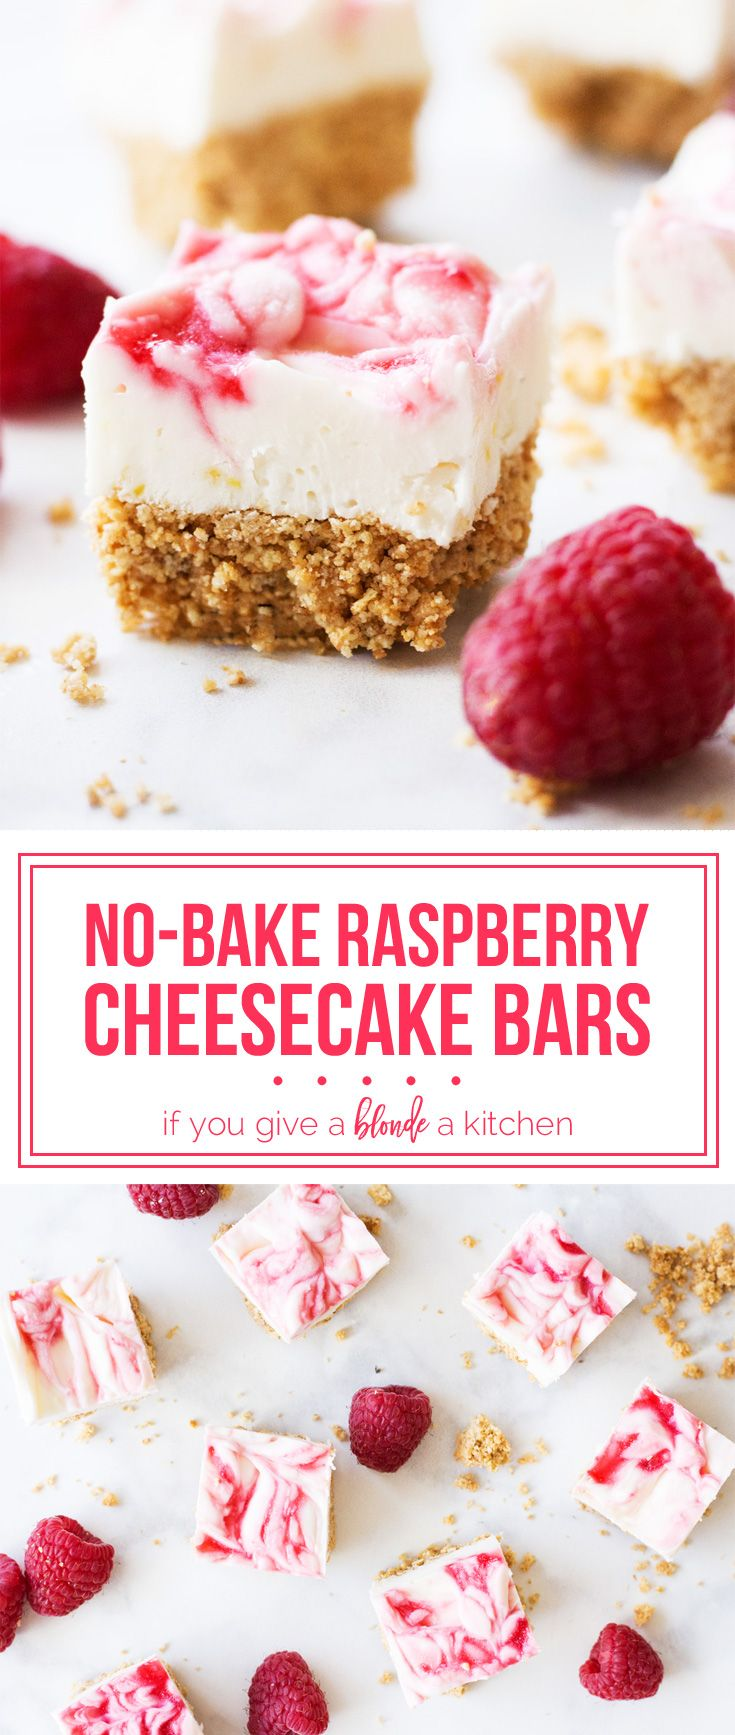 No bake raspberry cheesecake bars are sweet bites perfect for Valentine's Day! | www.ifyougiveablondeakitchen.com